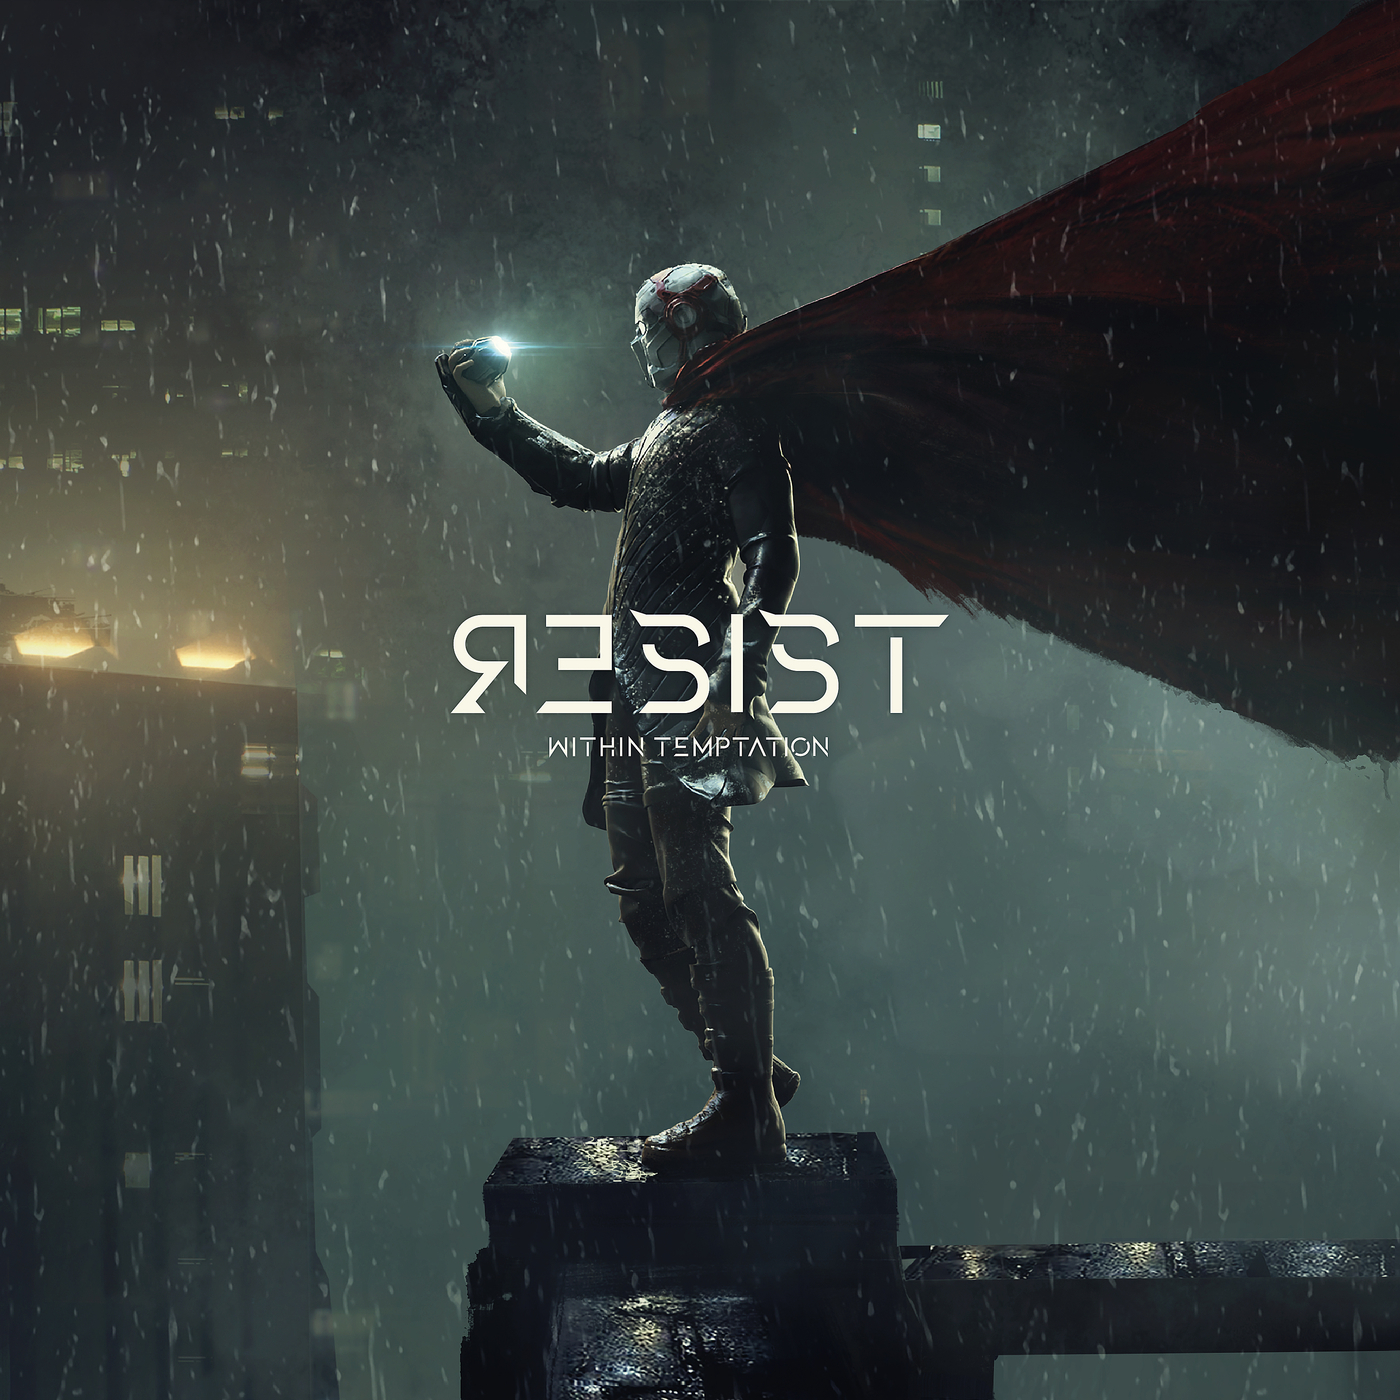 Within Temptation - Resist [Extended Deluxe] (2019)